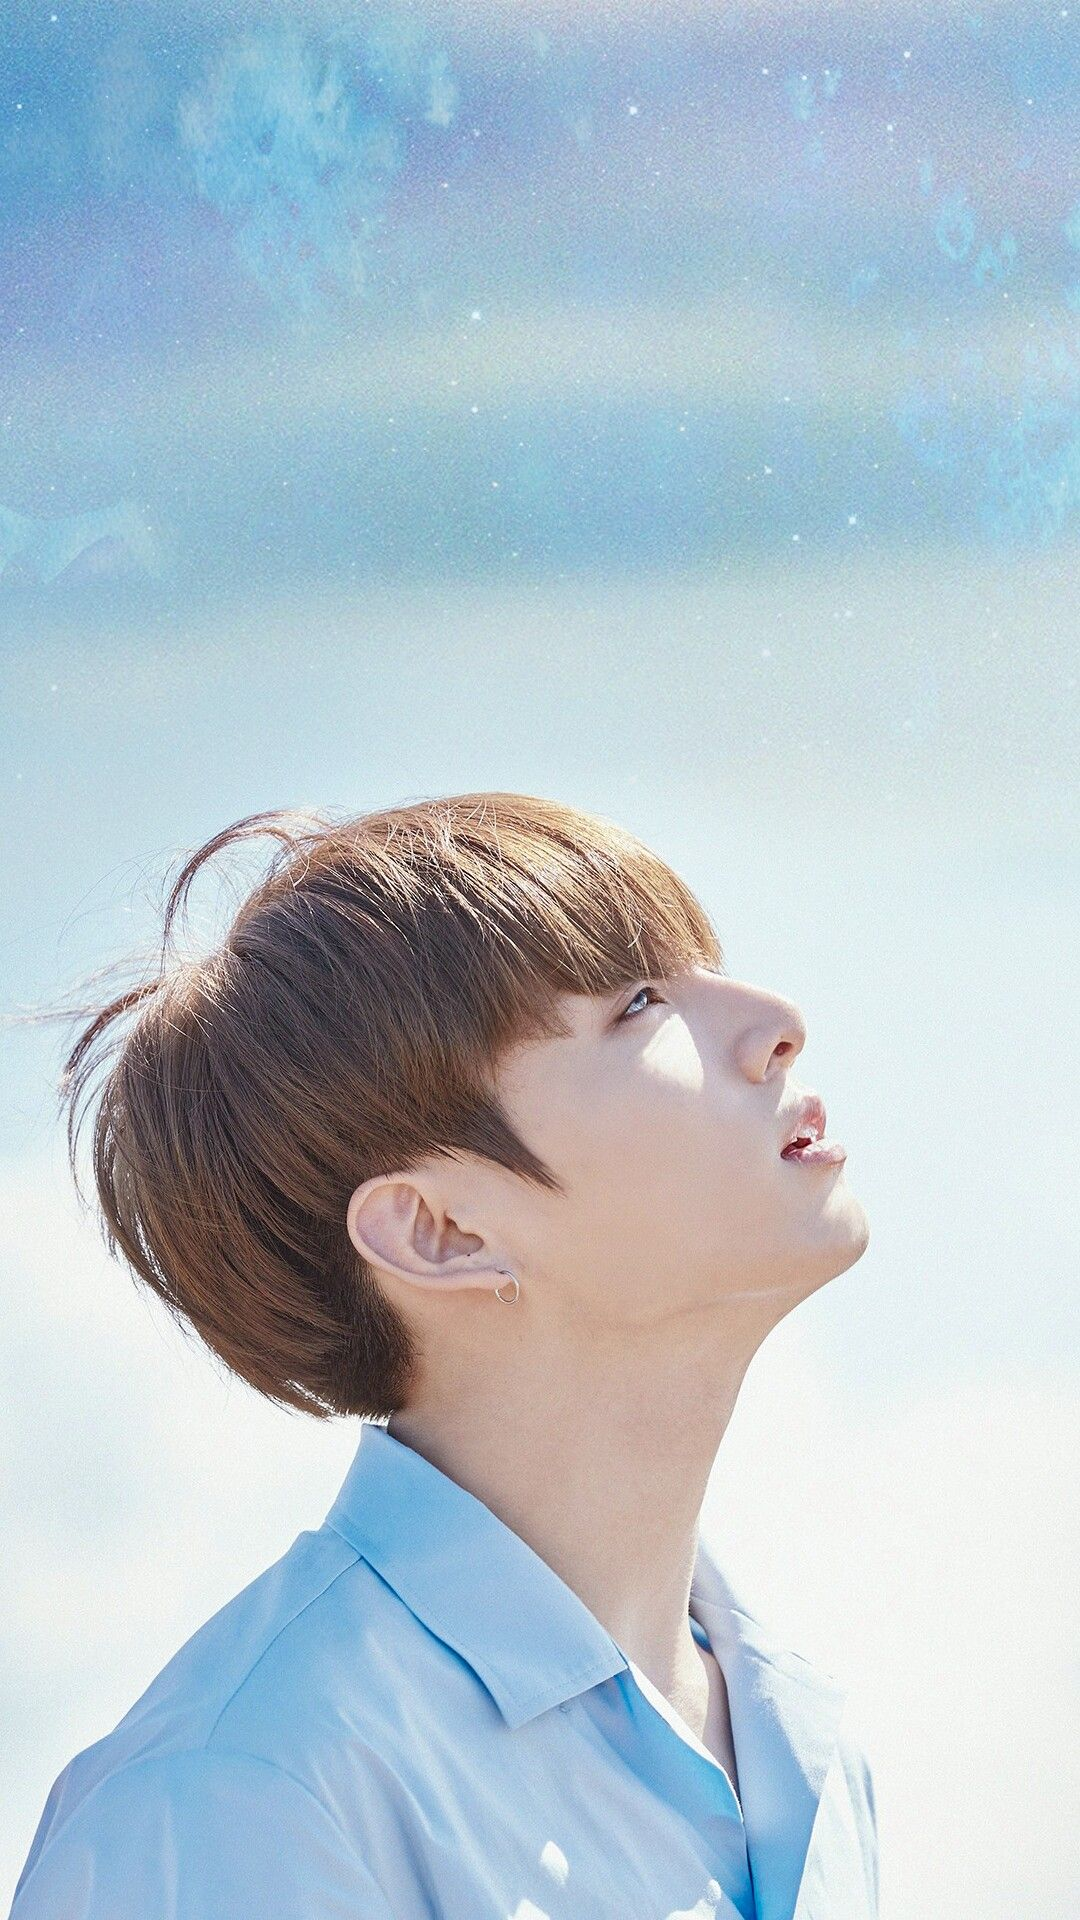 BTS Jungkook Wallpapers   Top BTS Jungkook Backgrounds 1080x1920